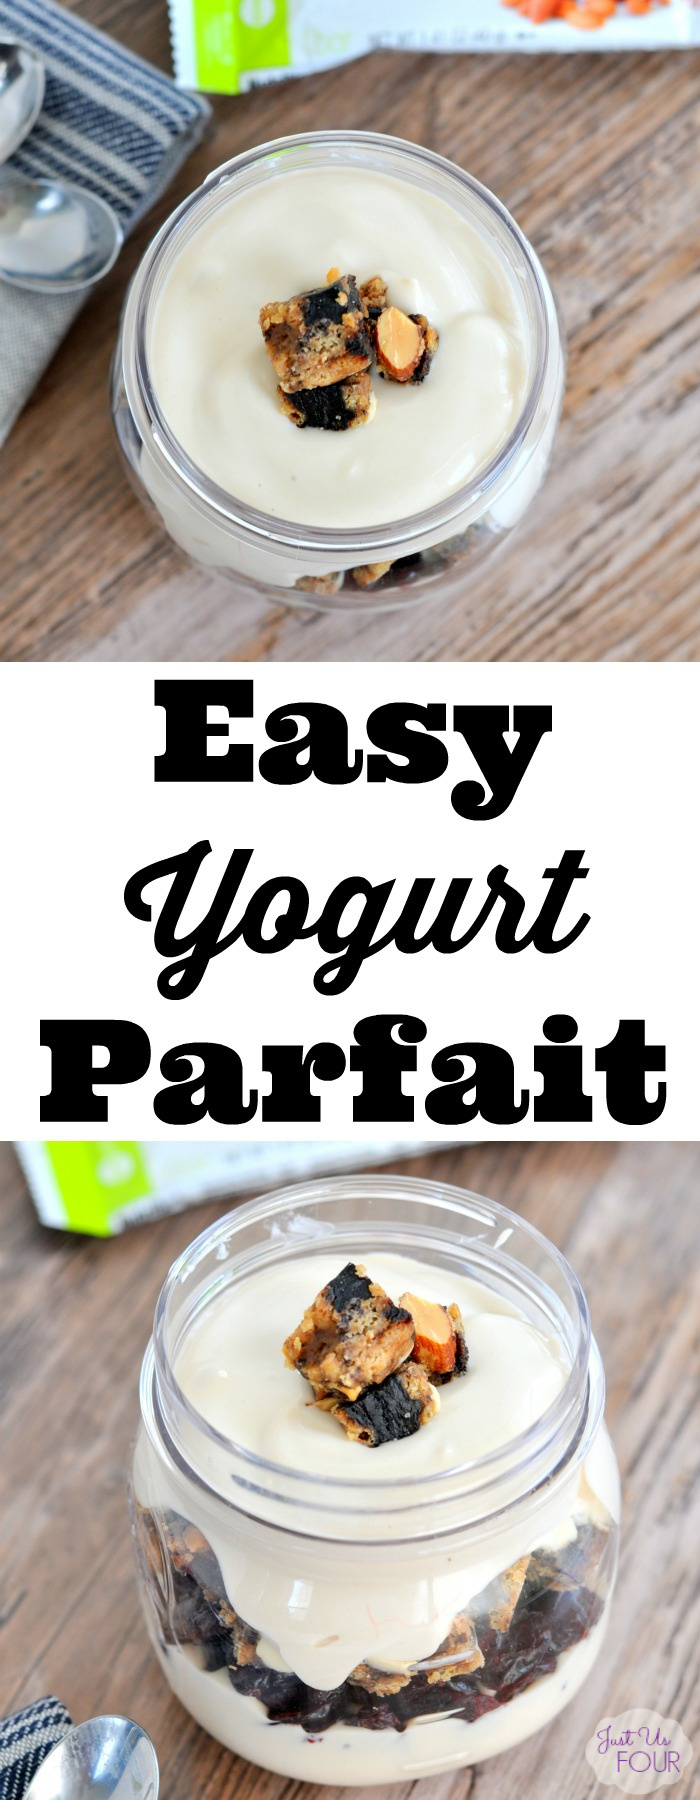 easy-yogurt-parfait-14